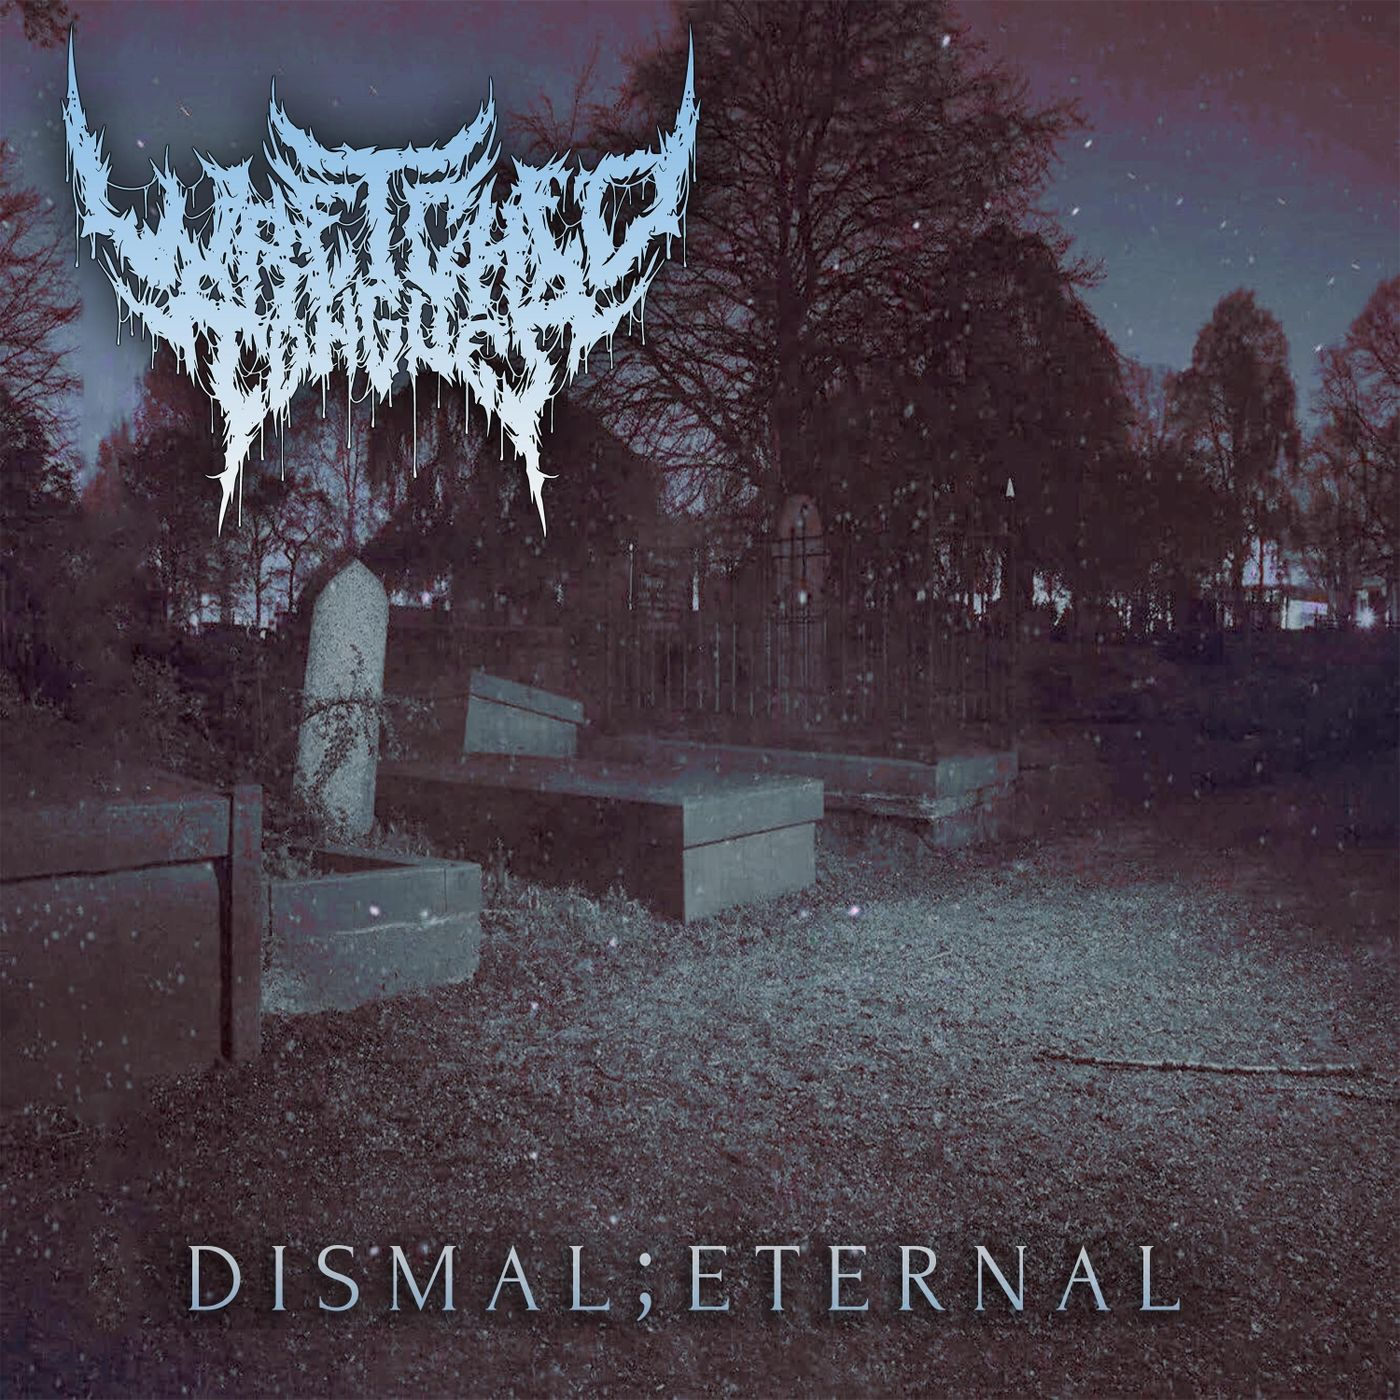 Wretched Tongues - Dismal;Eternal [single] (2020)